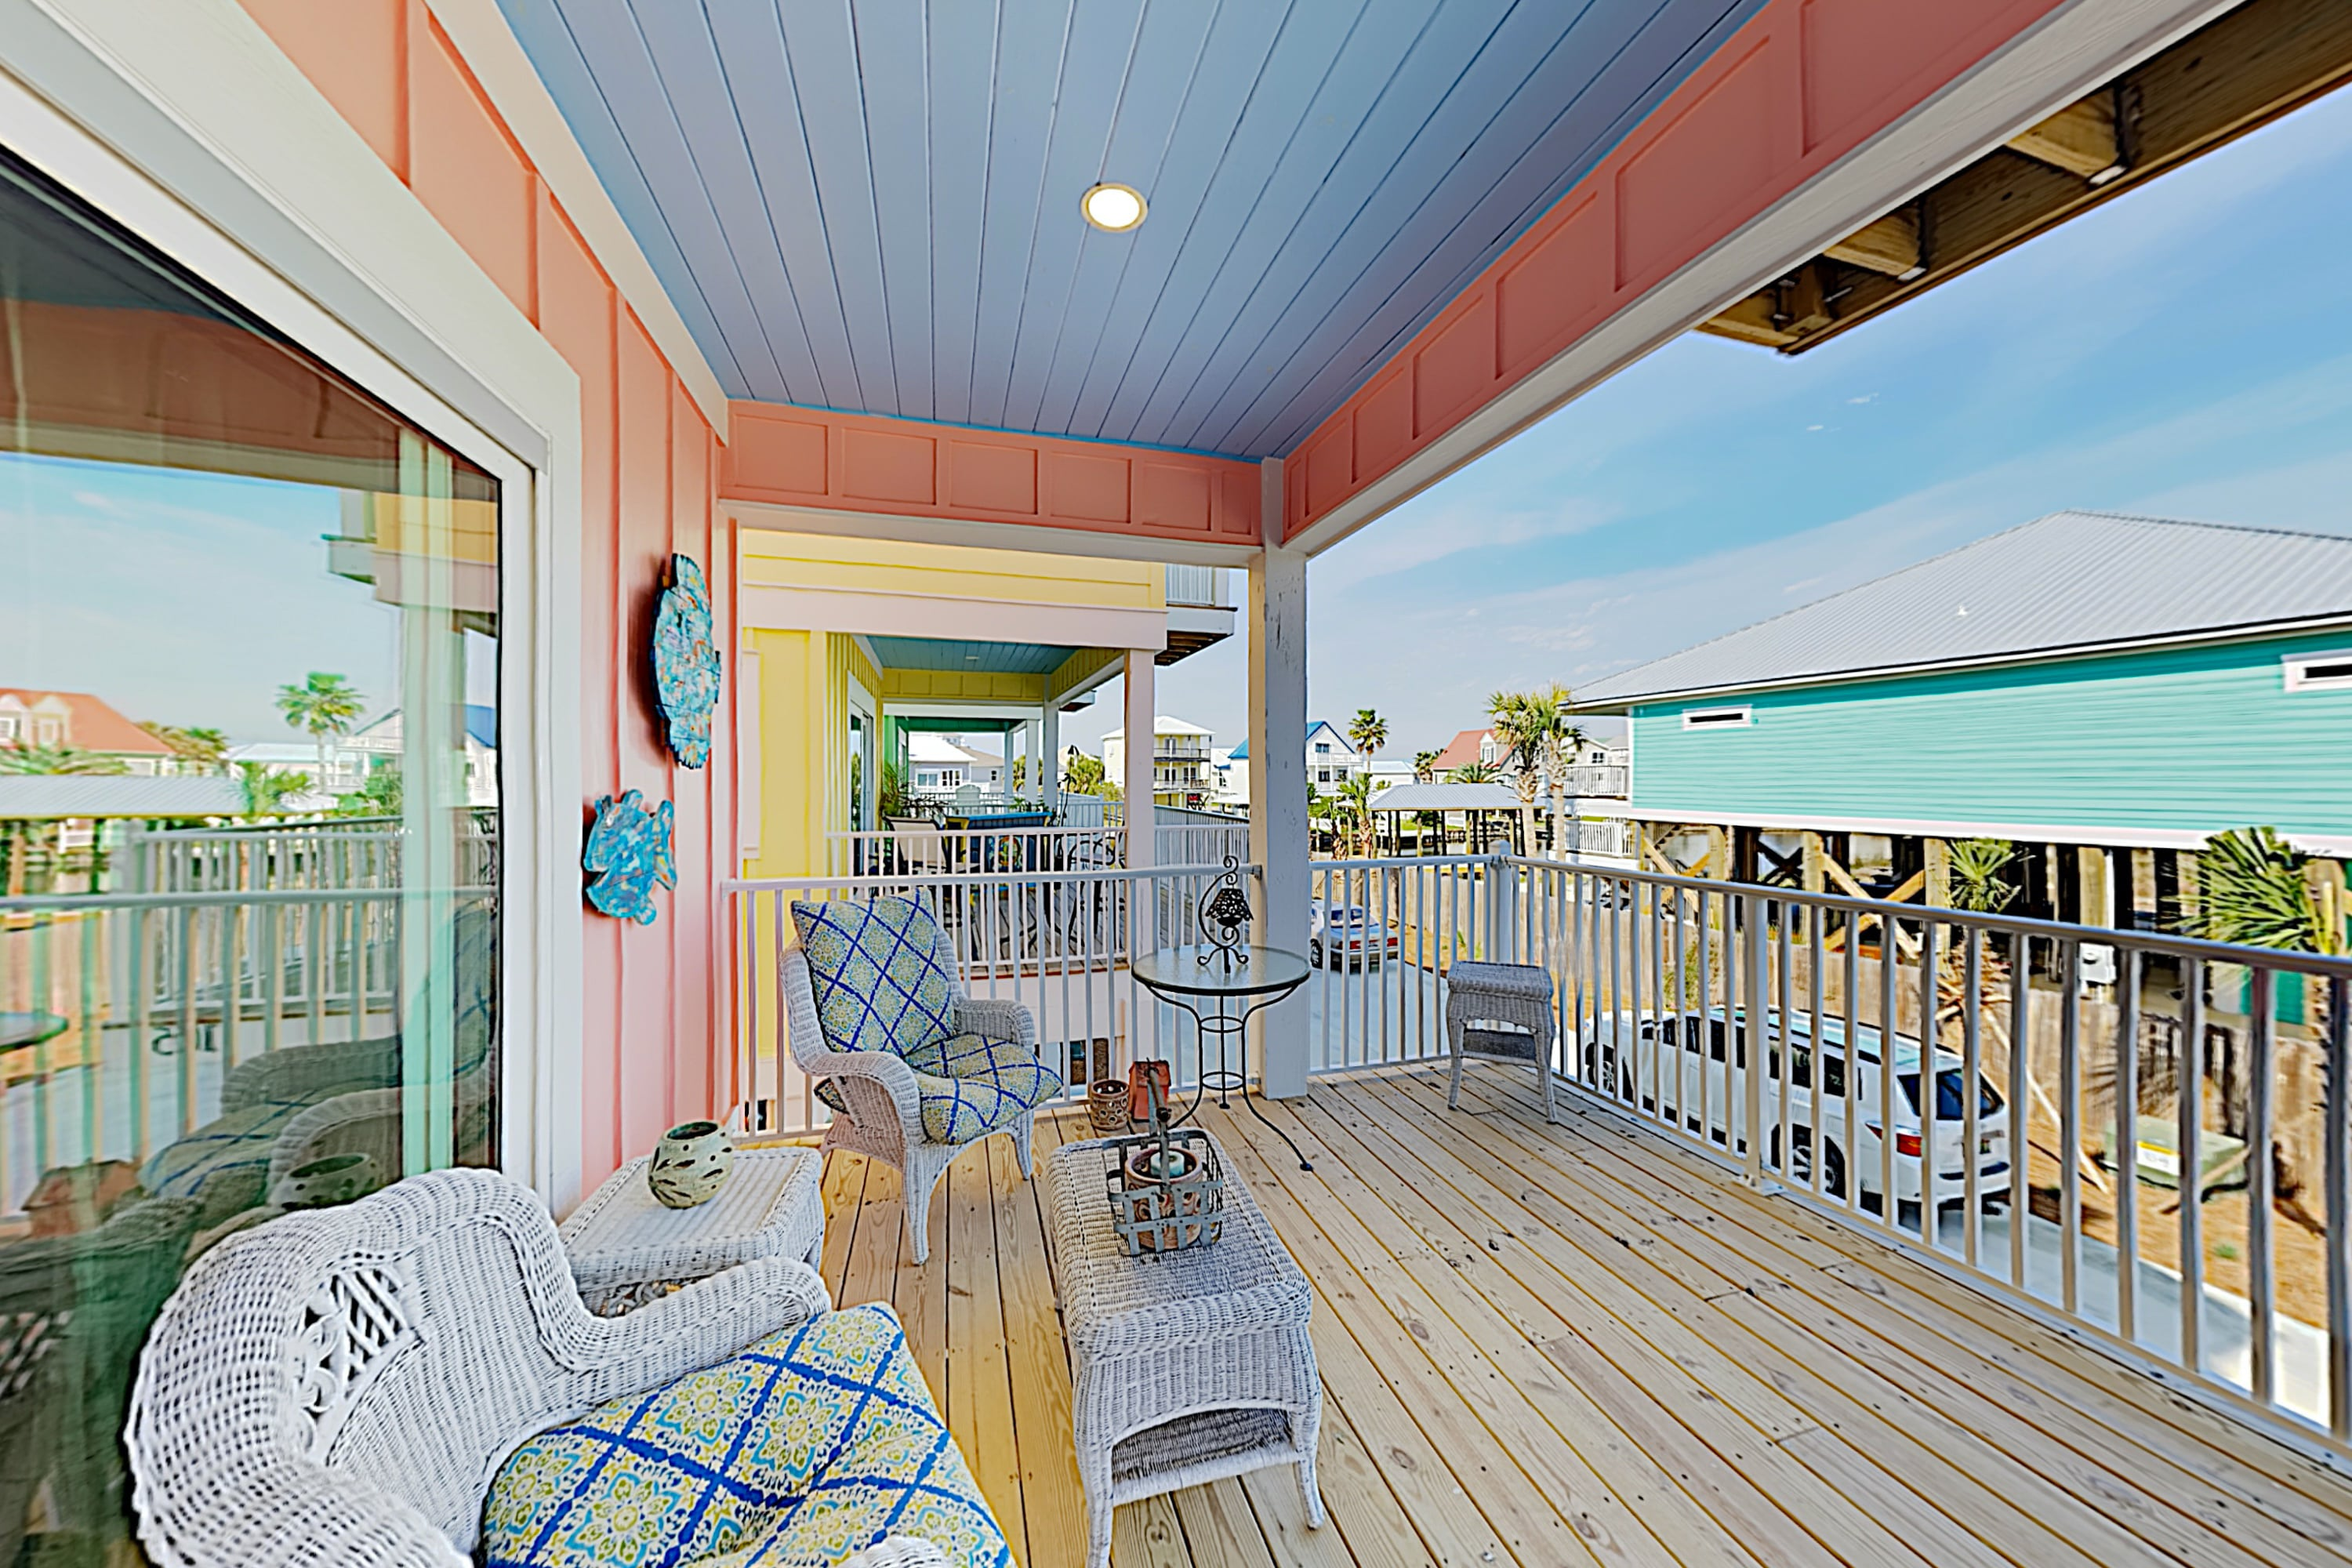 Take in the coastal breeze on the covered deck.